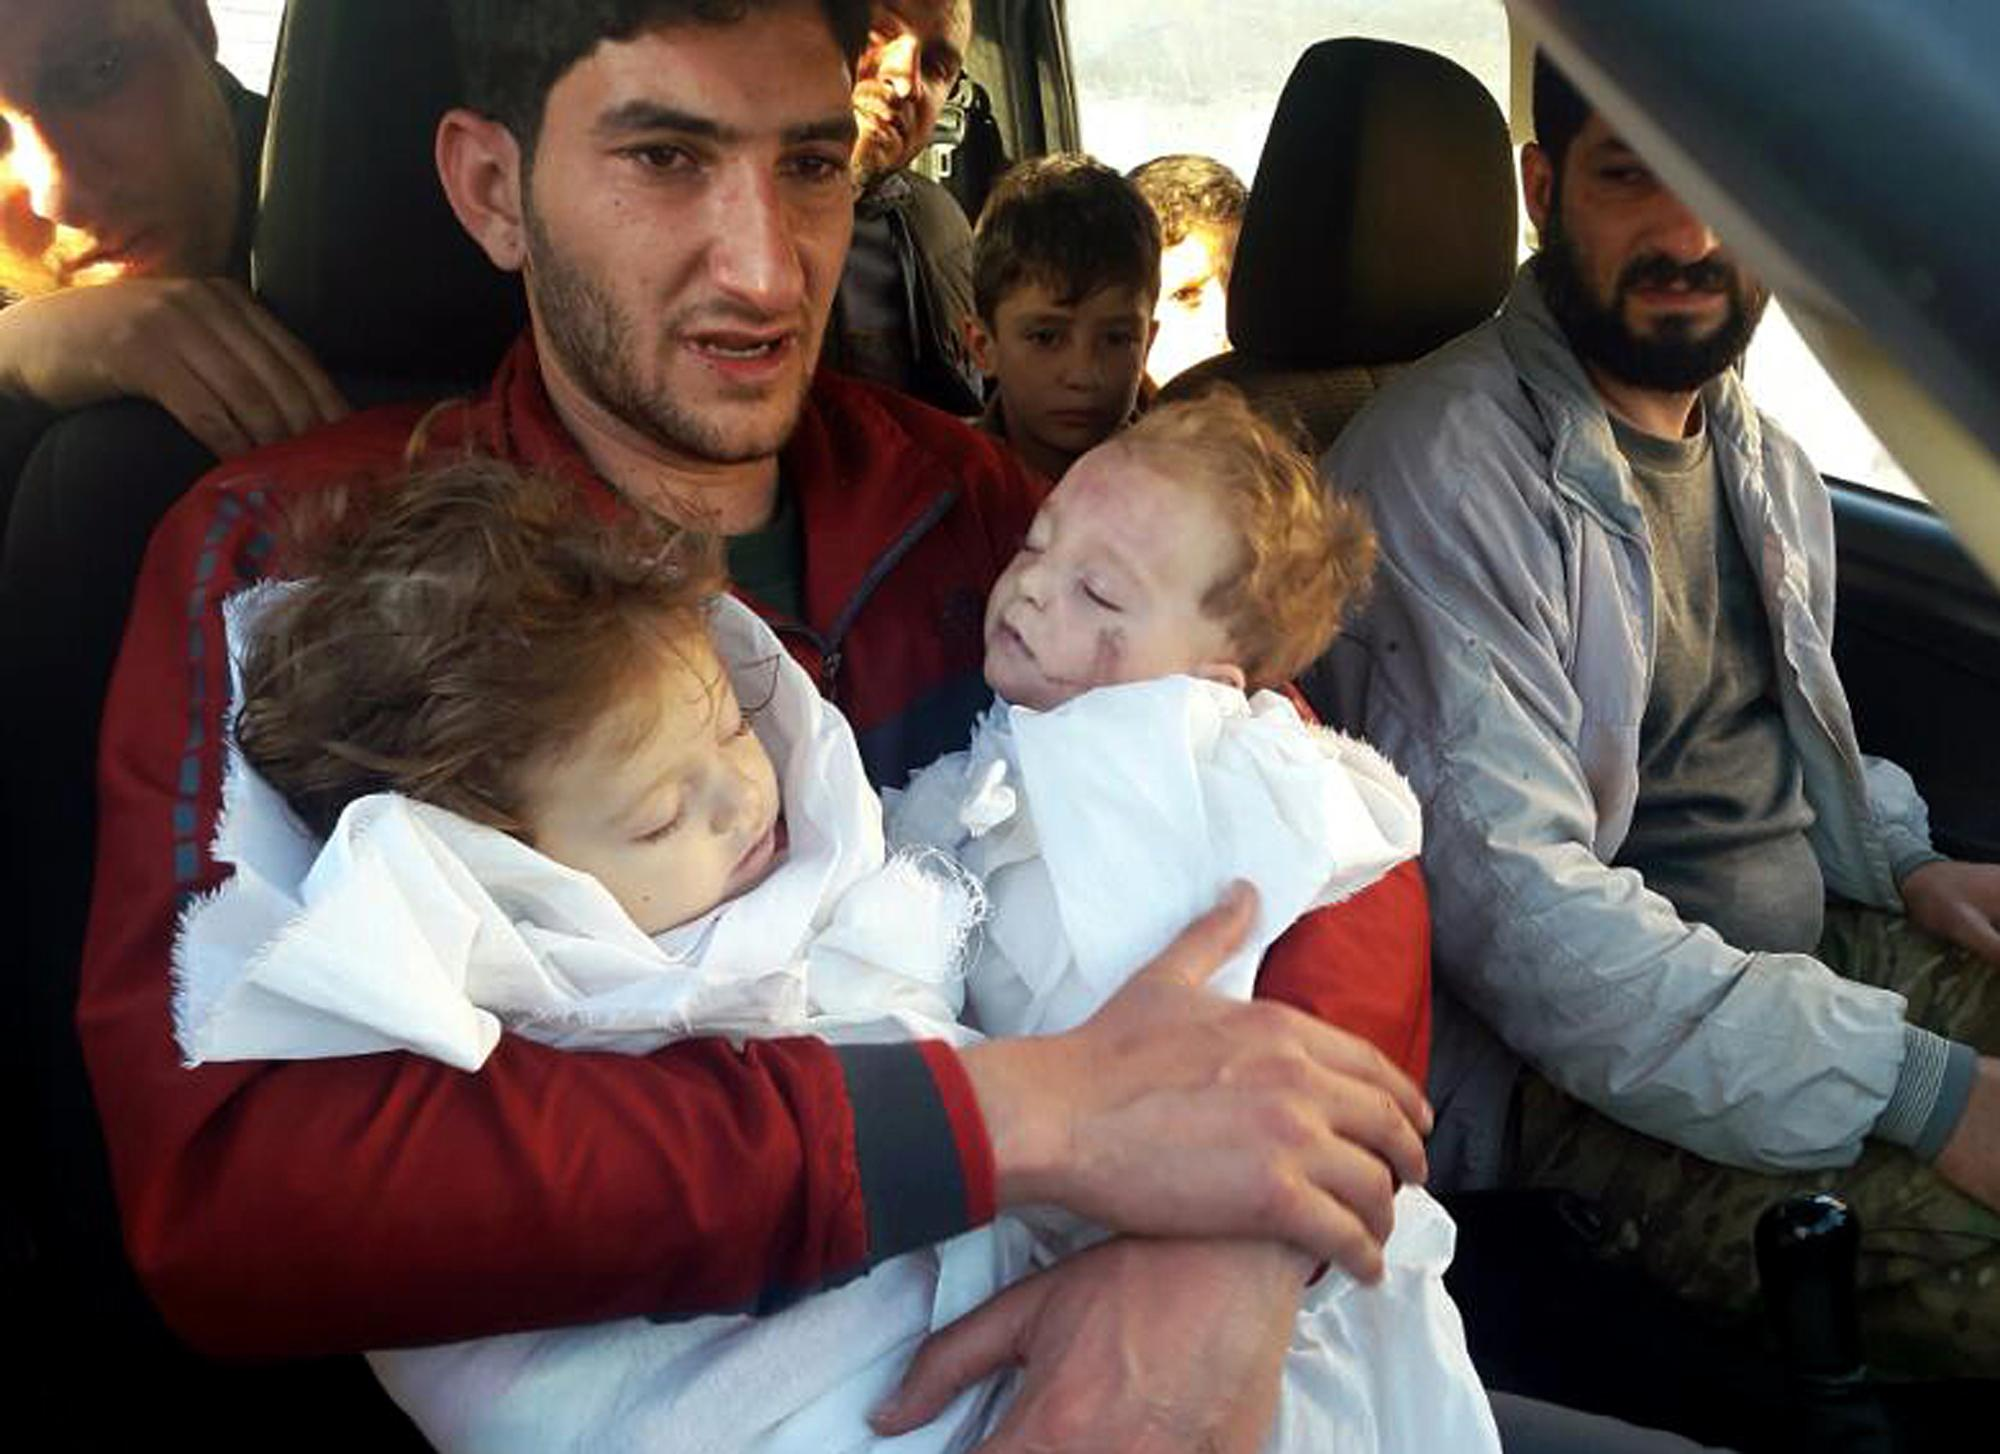 FILE -- In this Tuesday April 4, 2017 file photo, Abdel Hameed Alyousef, 29, holds his twin babies who were killed during a suspected chemical weapons attack, in Khan Sheikhoun in the northern province of Idlib, Syria. Turkey's health minister, Recep Akdag said Tuesday, April 11, 2017, that test results conducted on victims of the chemical attack in Khan Sheikhoun confirm that sarin gas was used. Officials from the World Health Organization and the Organization for the Prohibition of Chemical Weapons participated in the autopsies. (Alaa Alyousef via AP, File)